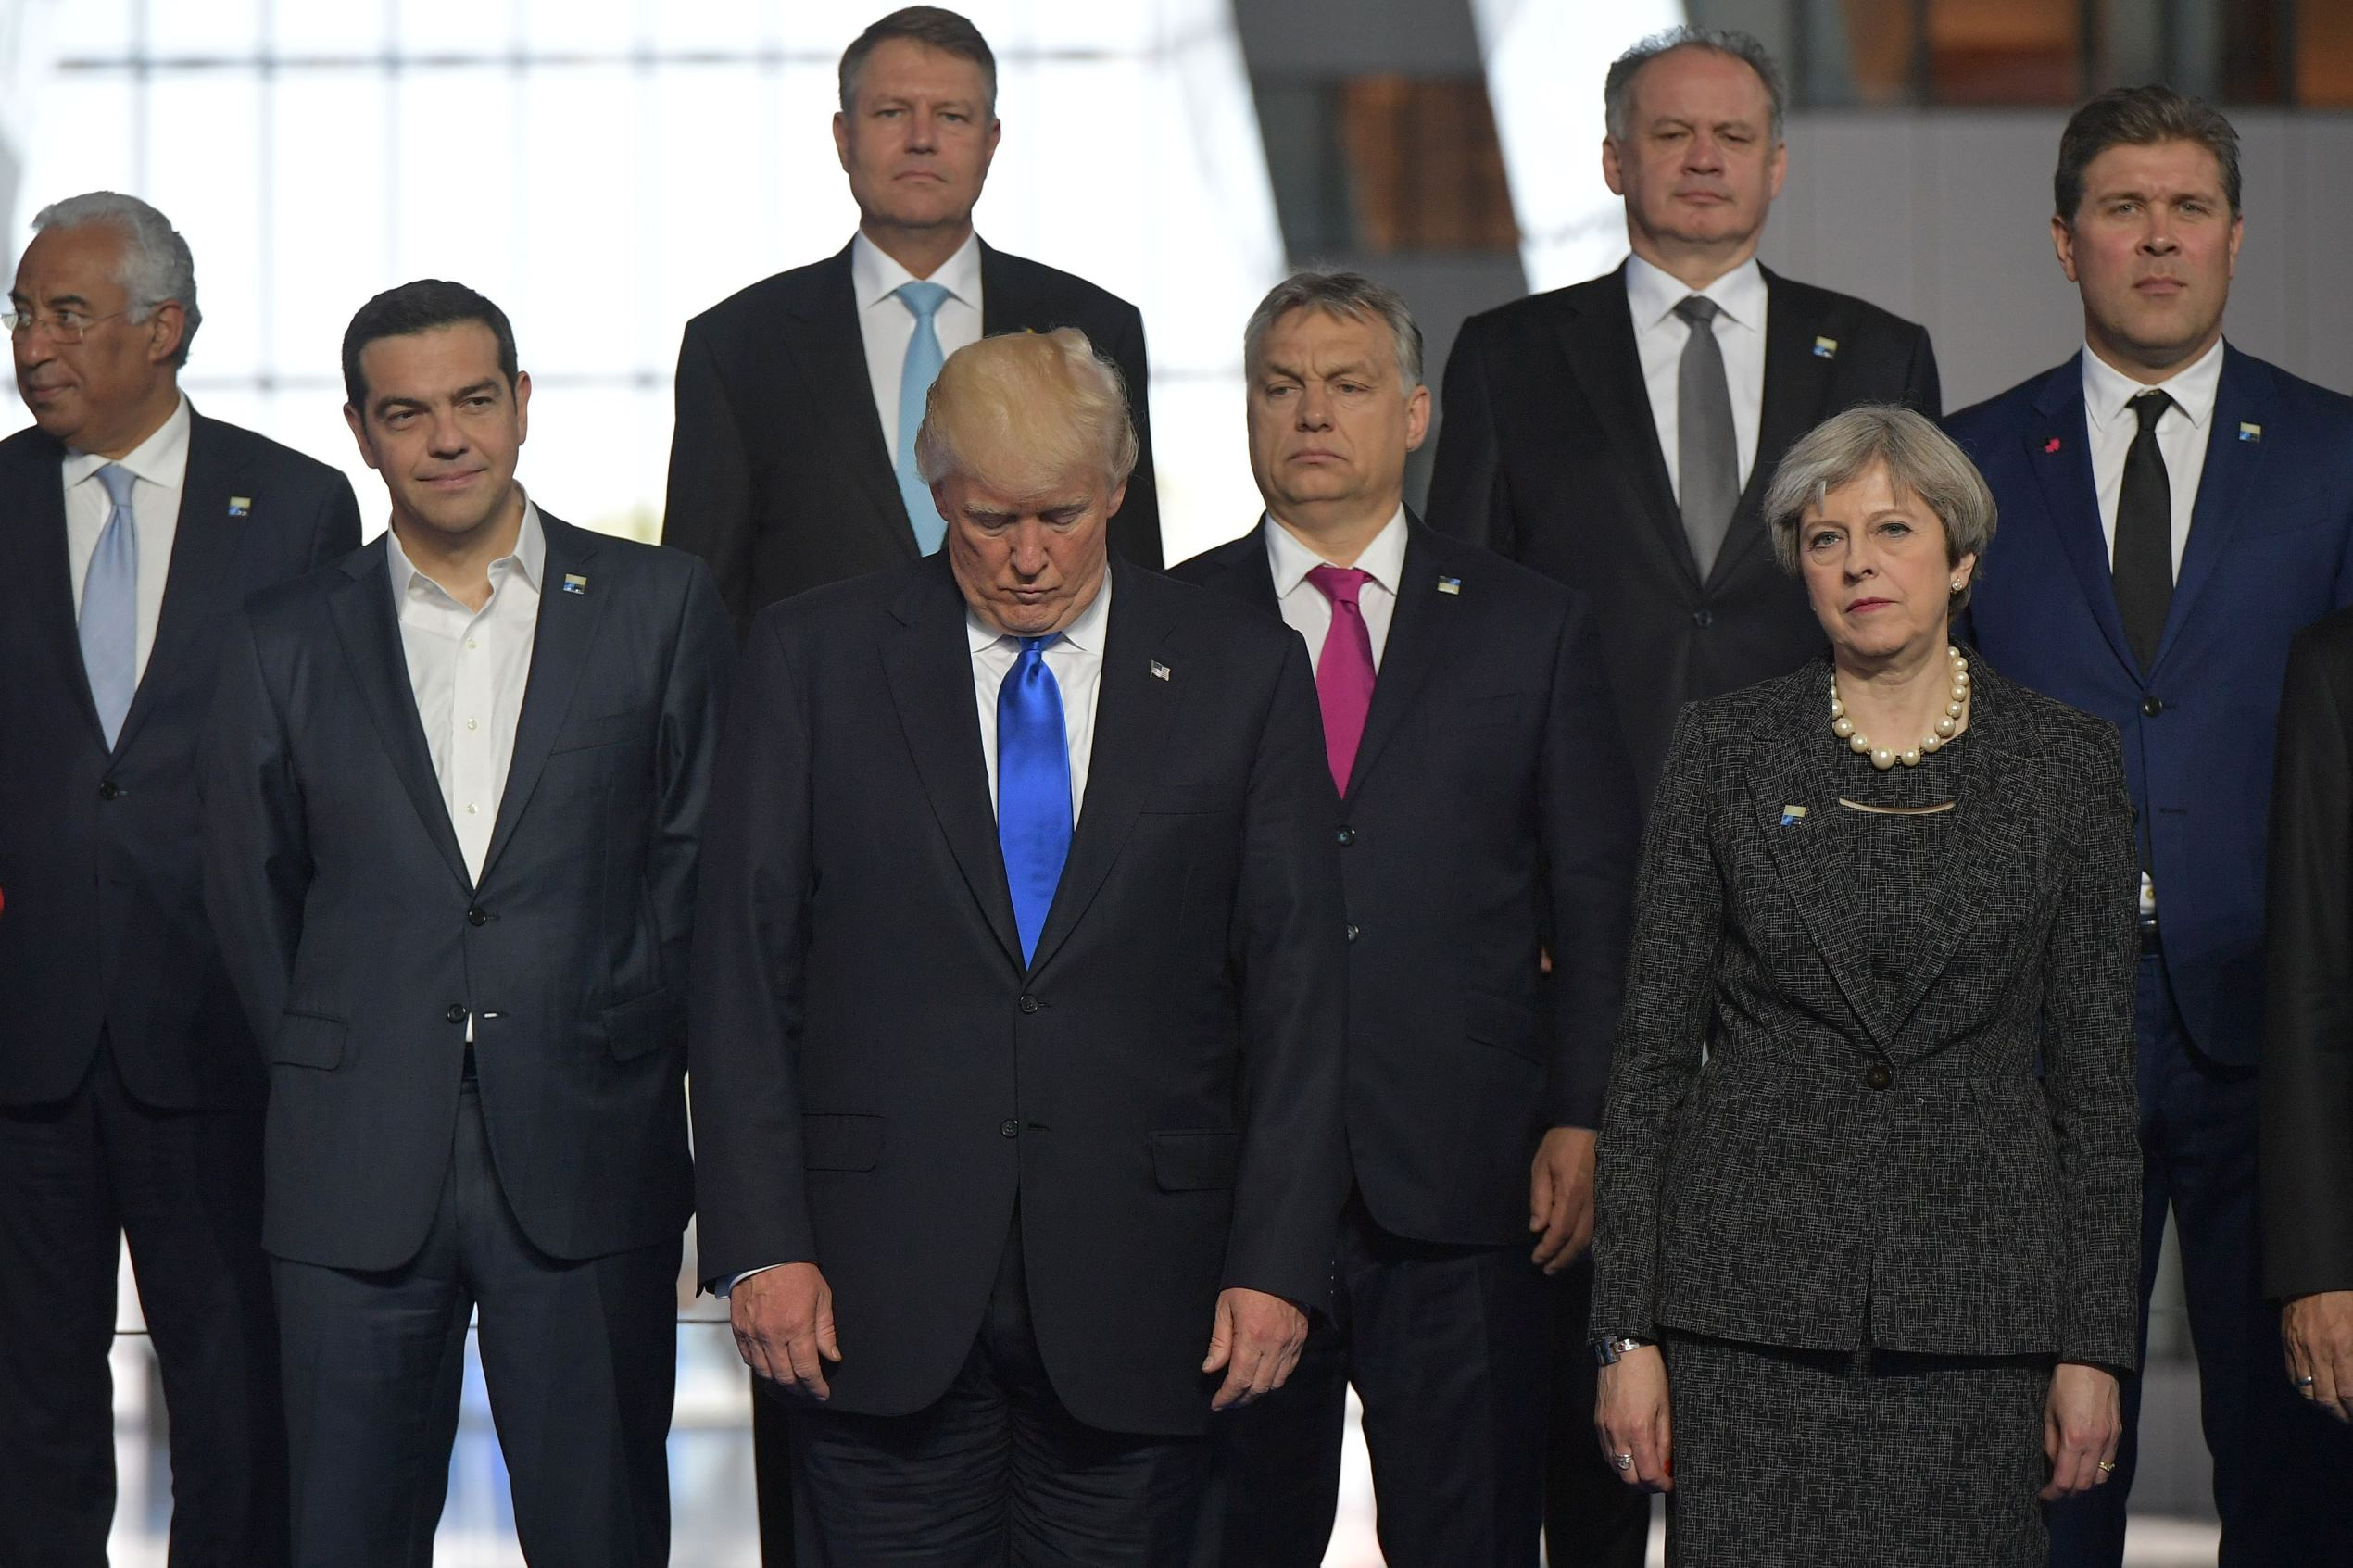 US President Donald Trump (front row C) reacts as he stands by (front row from L) Portuguese Prime Minister Antonio Costa, Greek Prime Minister Alexis Tsipras, Hungary's Prime Minister Viktor Orban, Britain's Prime Minister Theresa May, (back row from L Romanian President Klaus Werner Iohannis, Slovakia's President Andrej Kiska and Iceland's Prime Minister Bjarni Benediktsson, during a family picture during the NATO (North Atlantic Treaty Organization) summit at the NATO headquarters, in Brussels, on May 25, 2017.